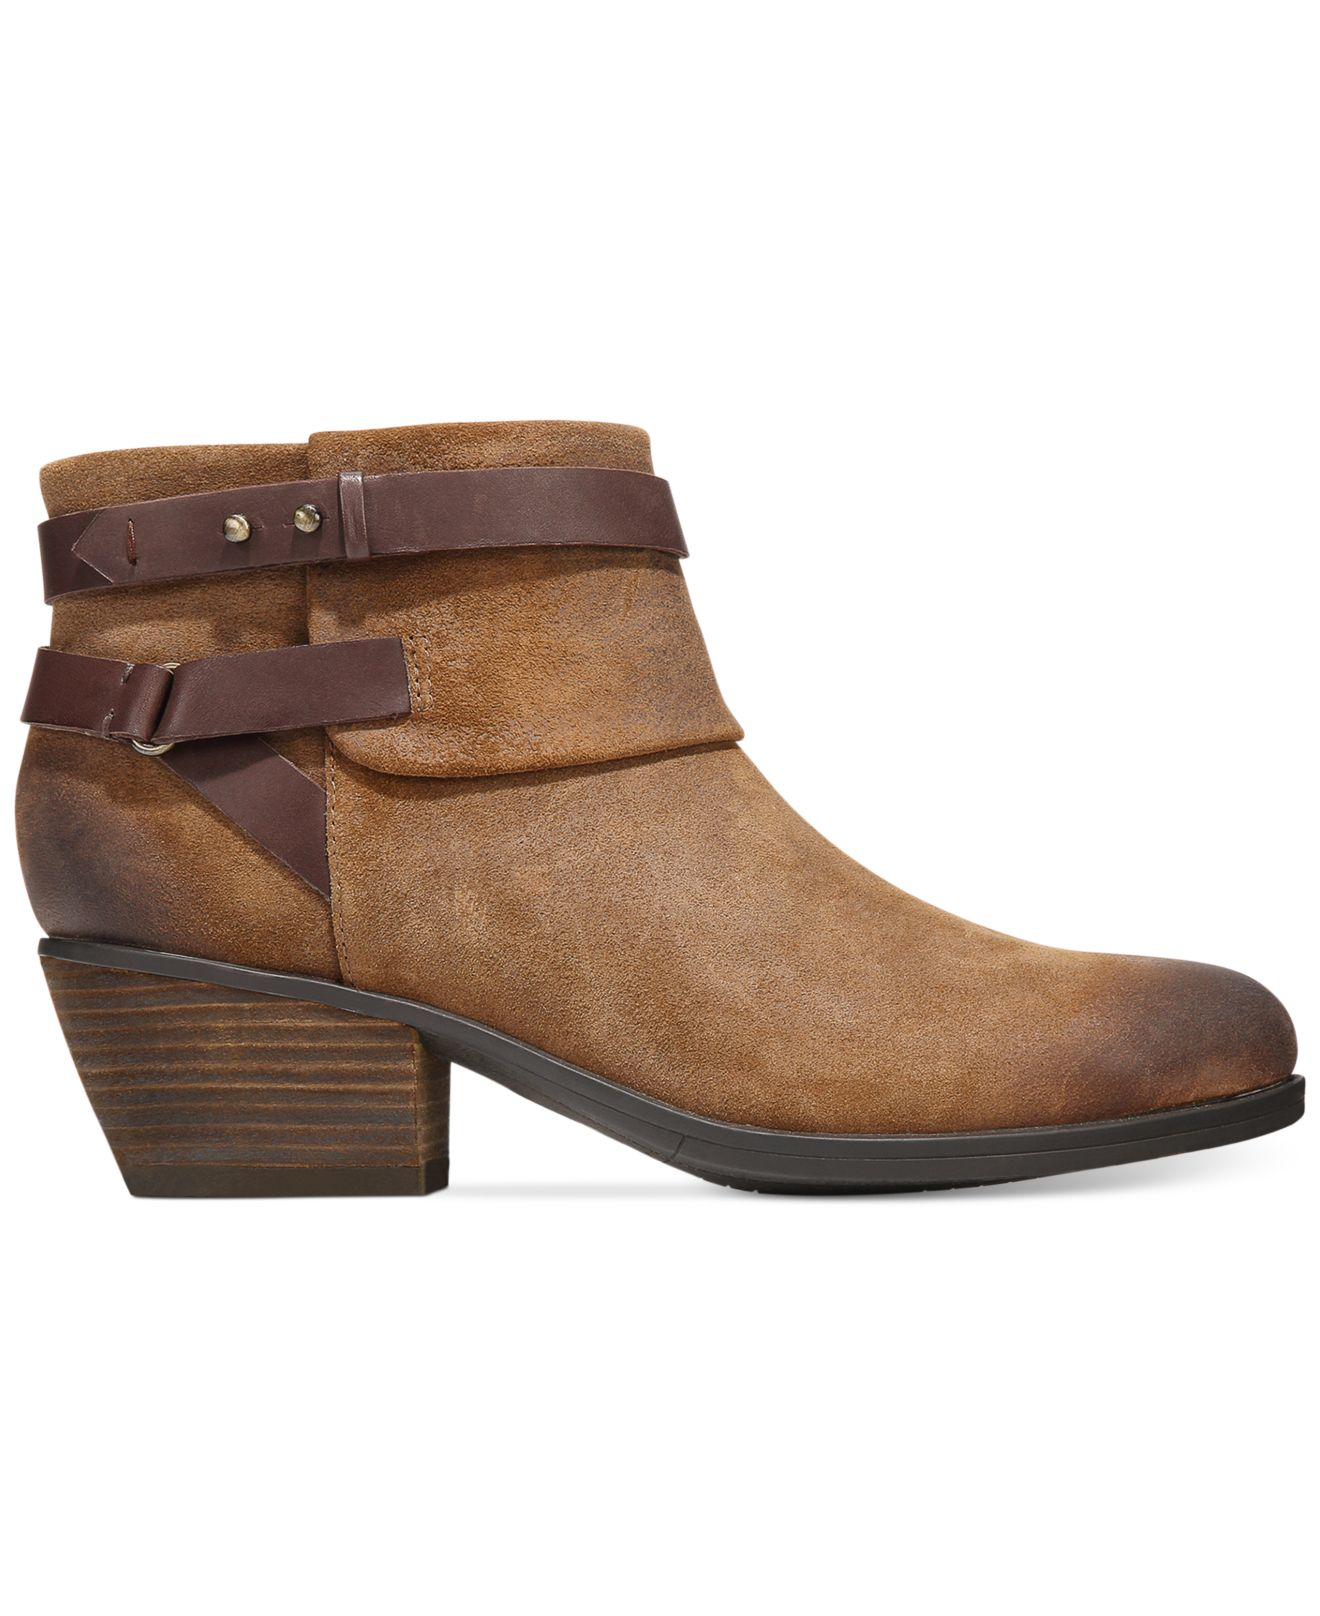 Clarks Shoes Booties For Women